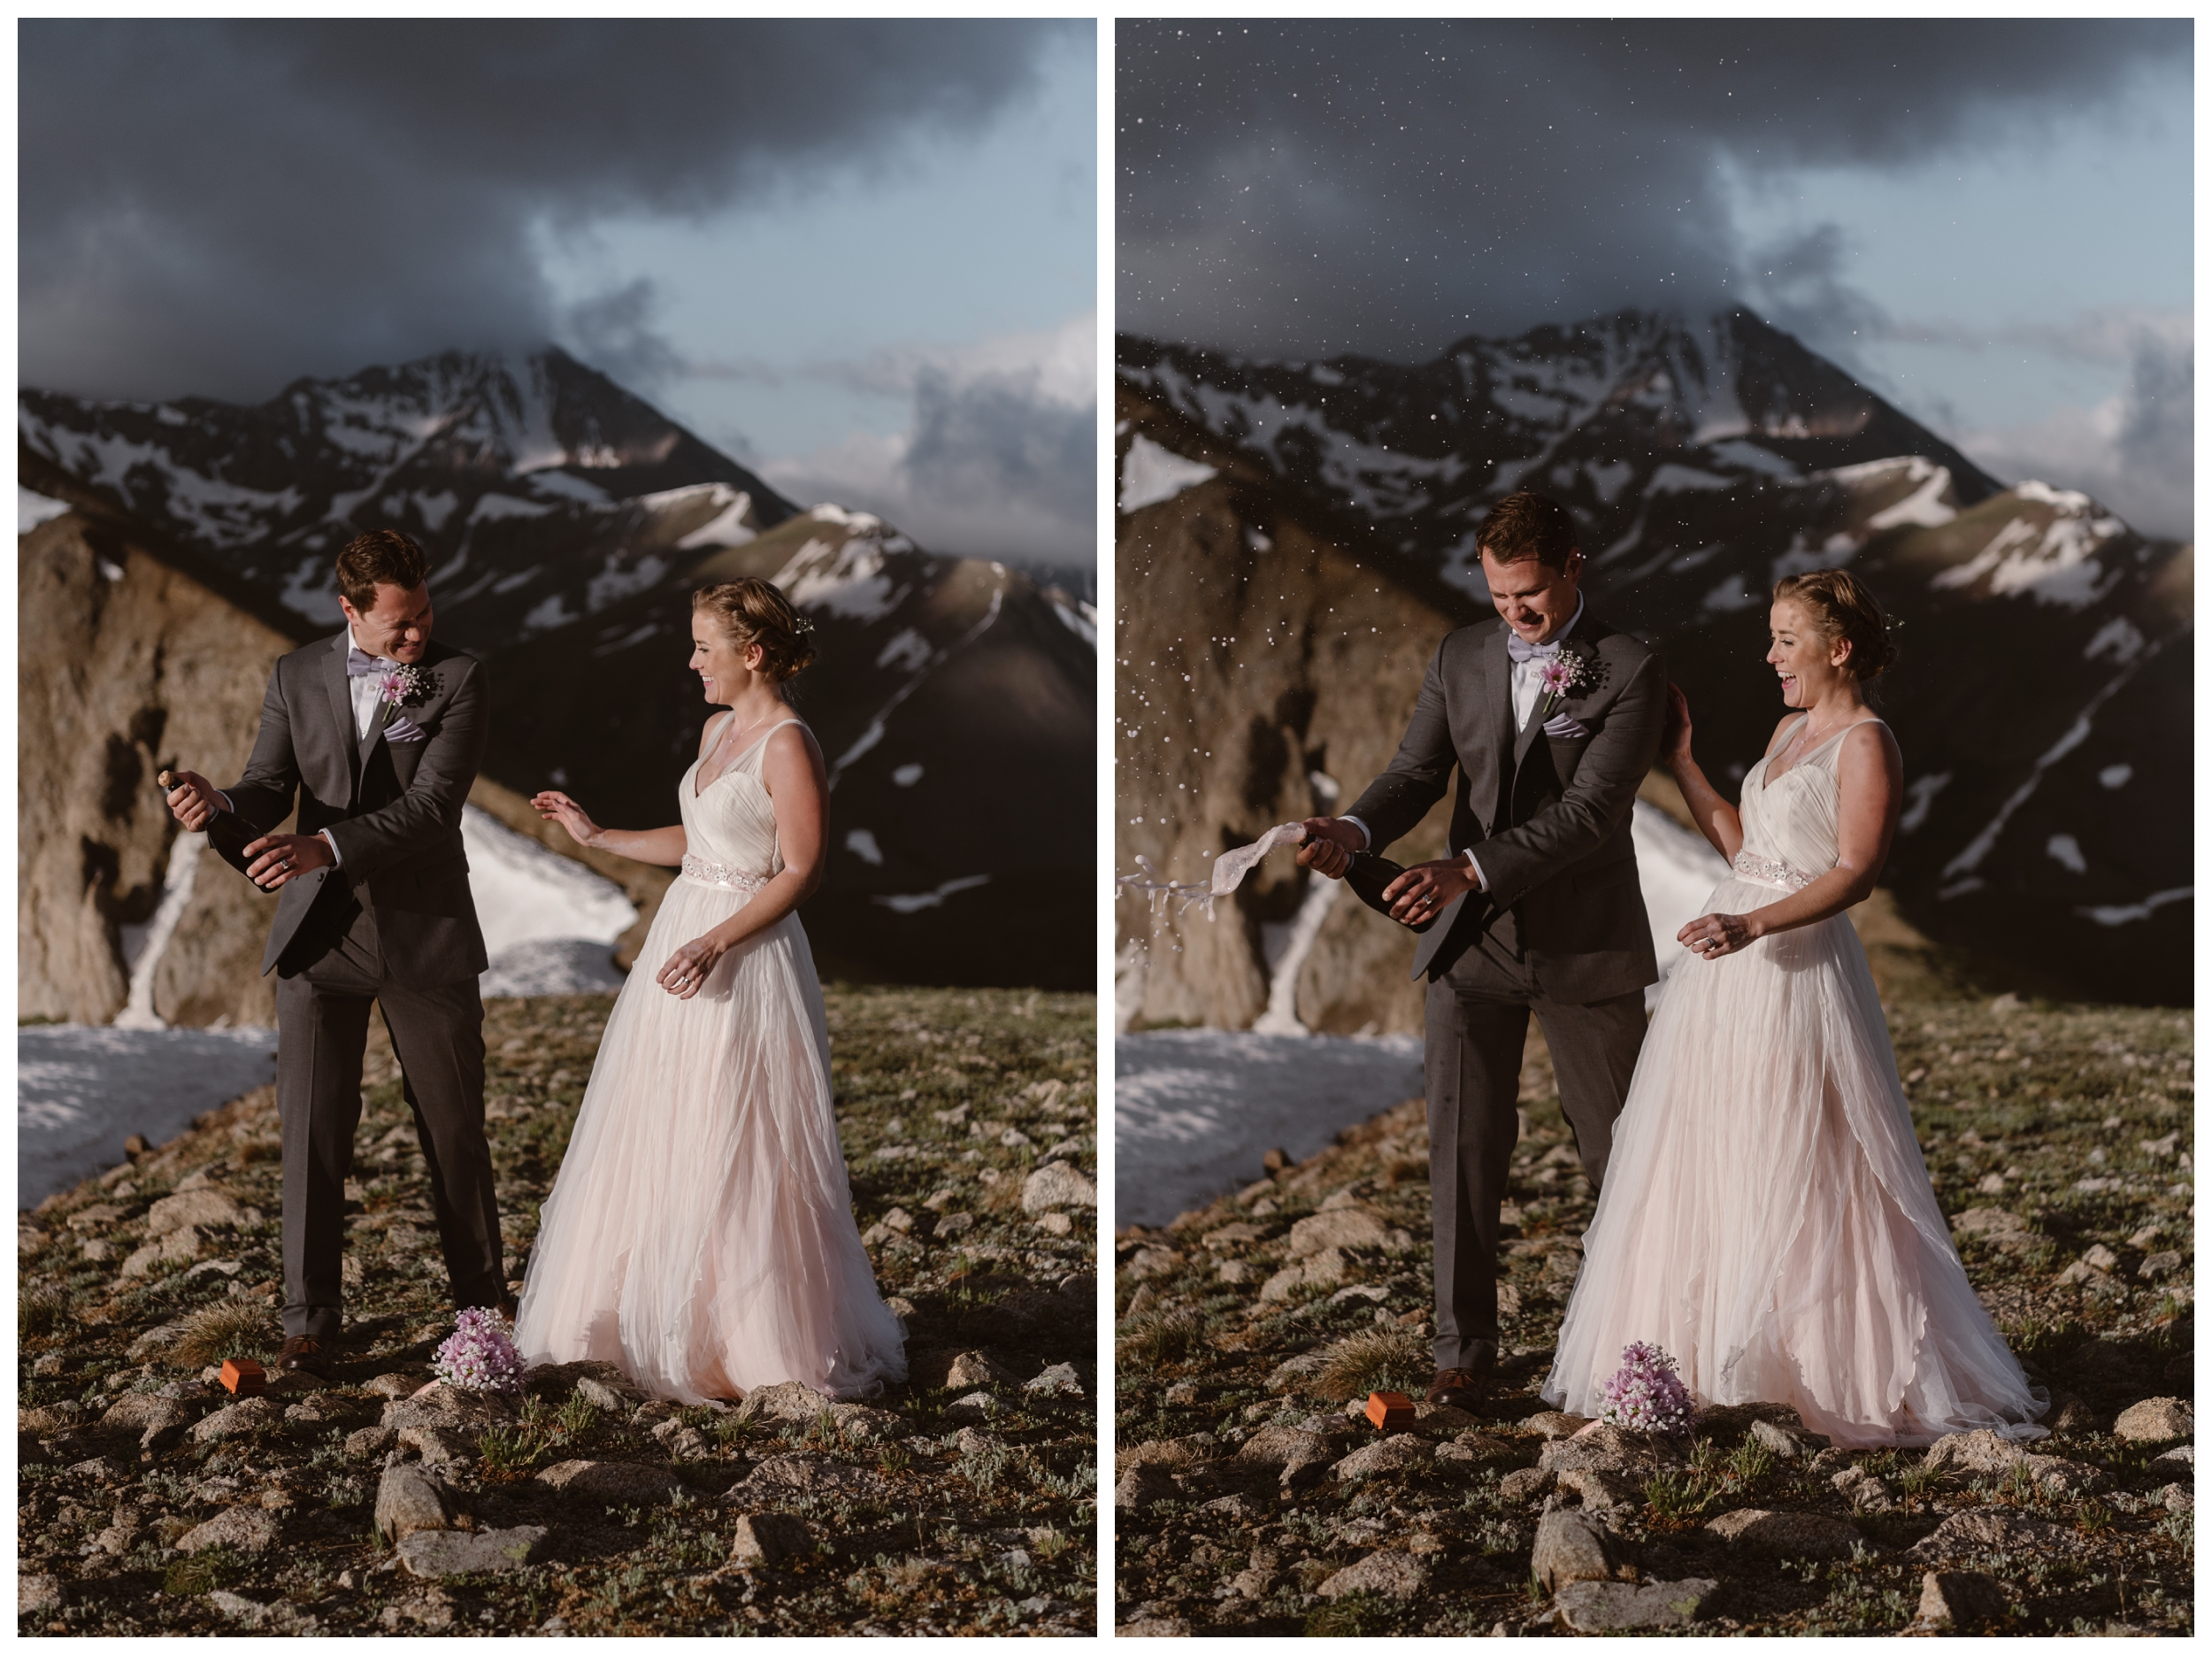 To celebrate following their intimate self solemnizing adventure elopement ceremony, Marcela and Vasily pop open a bottle of champagne on the top of Independence Pass, outside Aspen, Colorado. Photo by Maddie Mae, Adventure Instead.